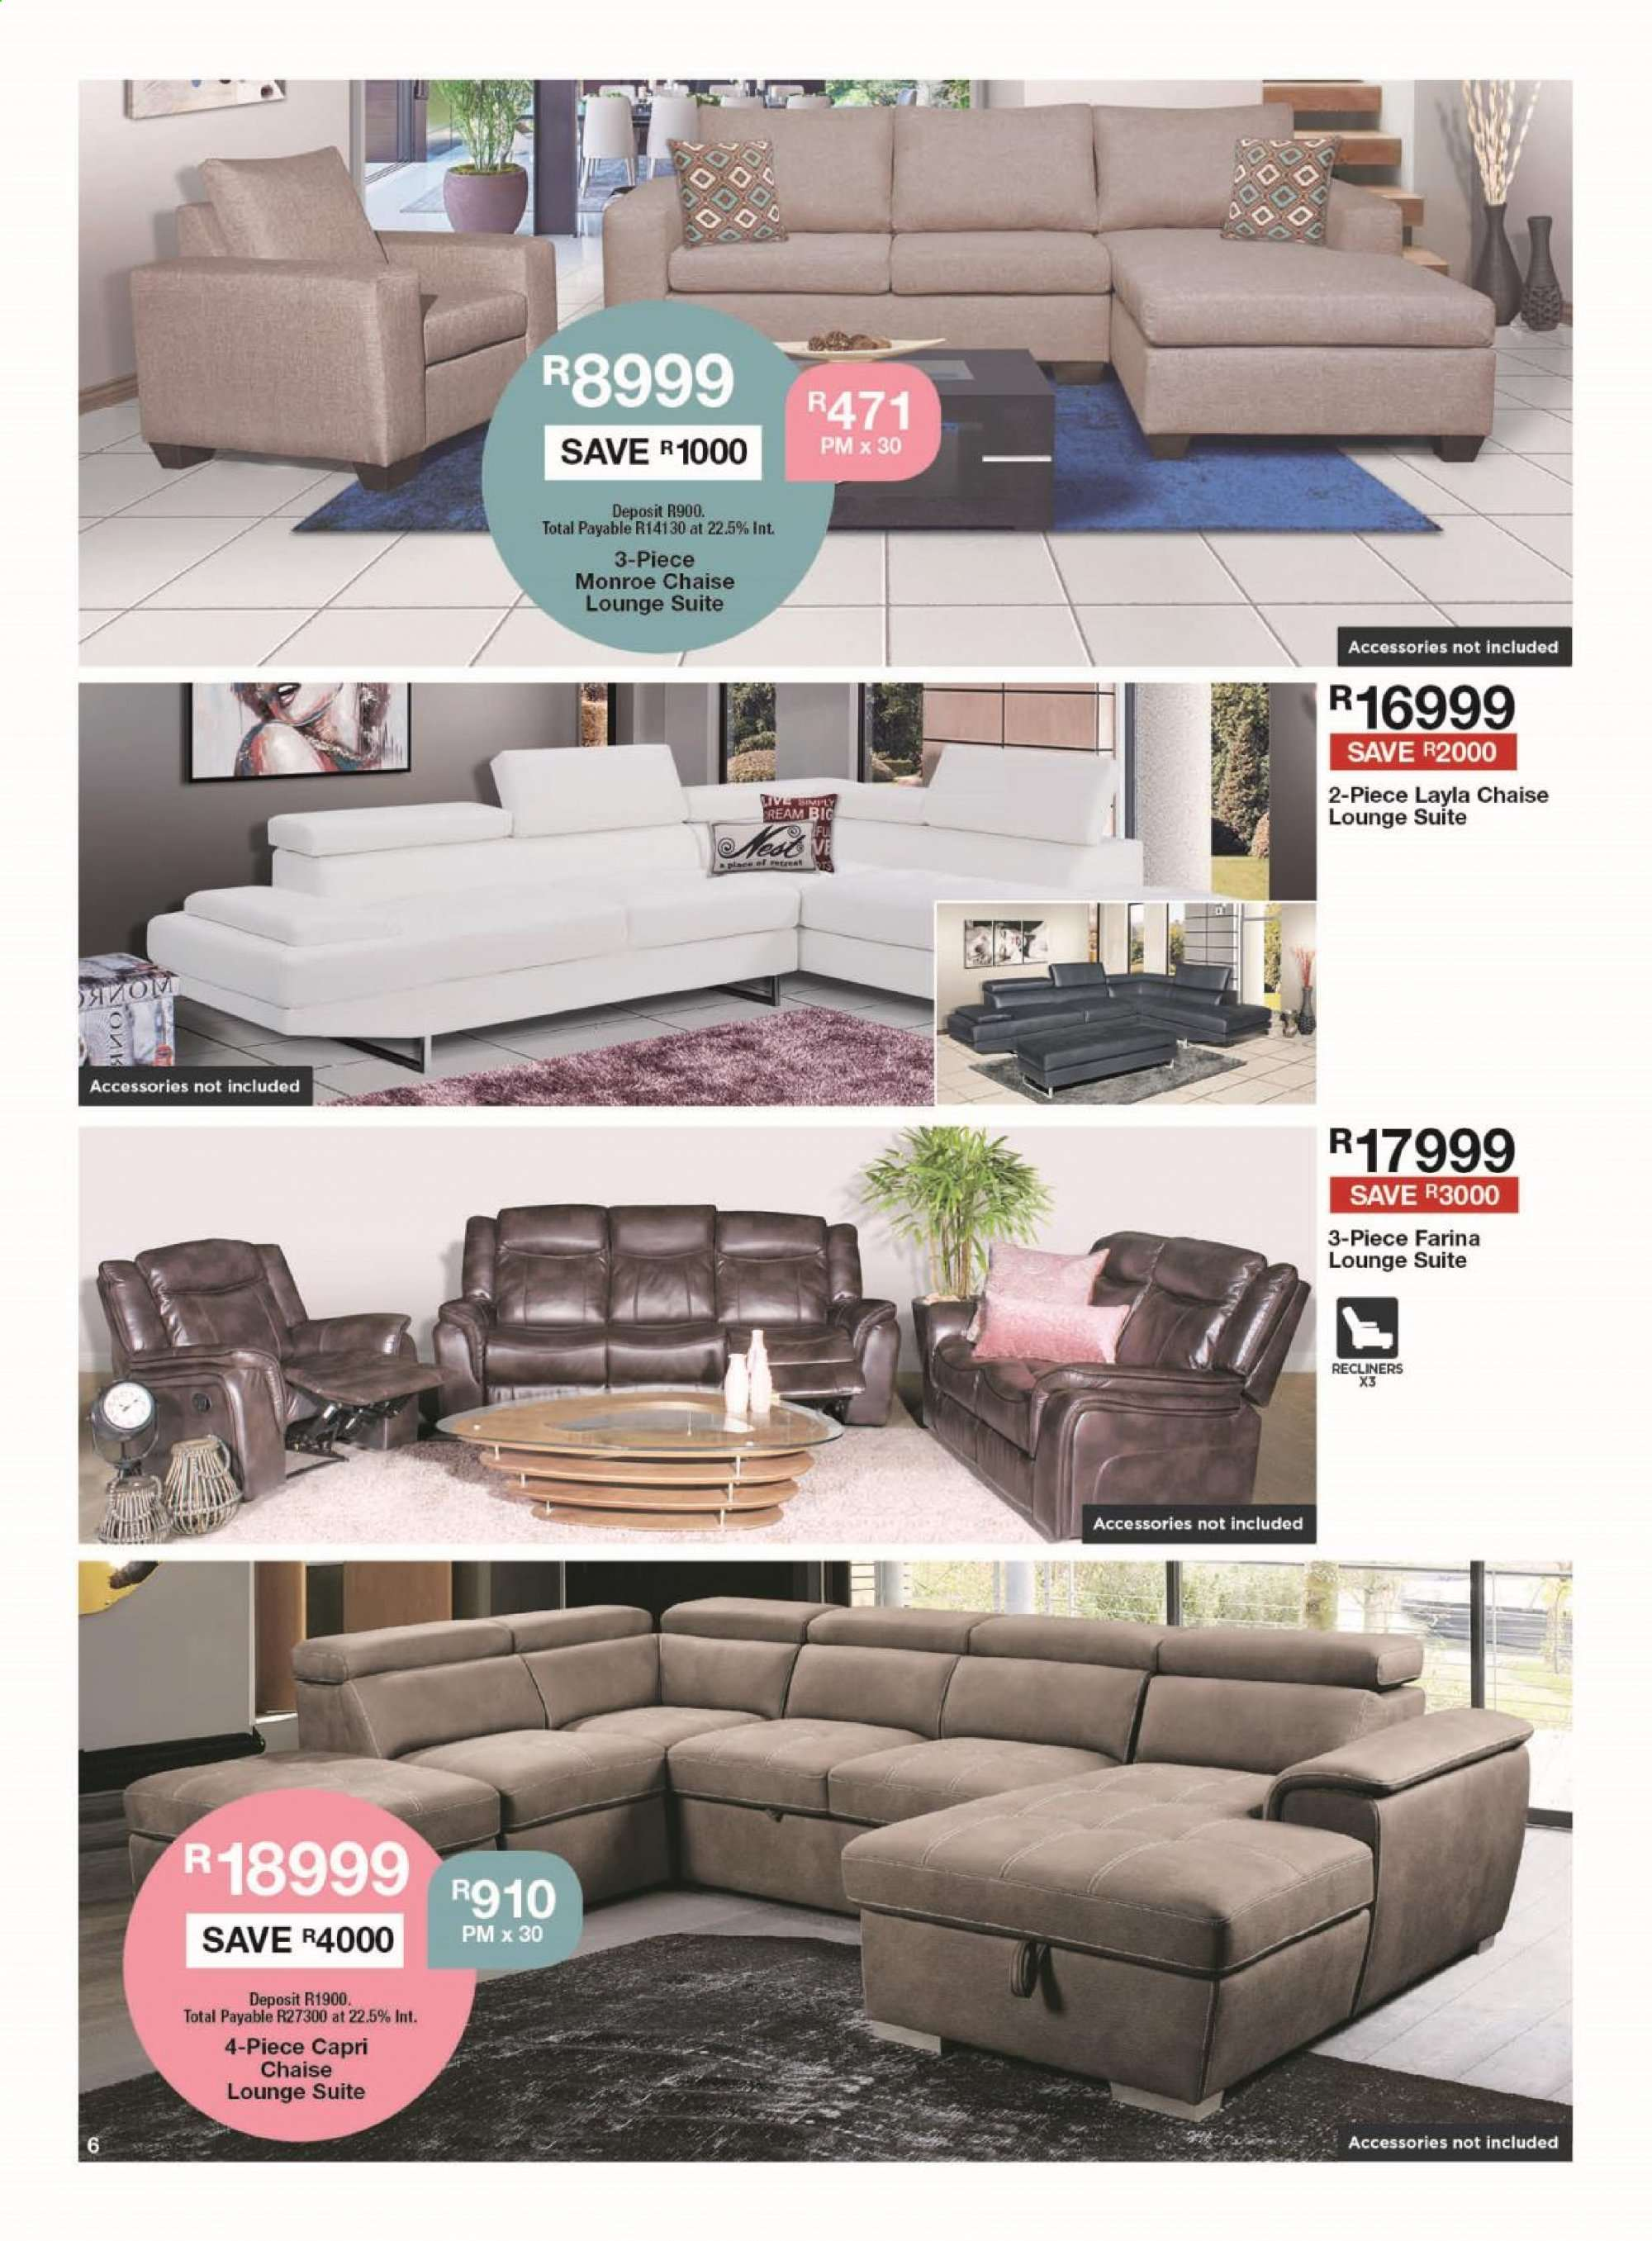 House & Home catalogue  - 08.09.2019 - 08.18.2019. Page 4.